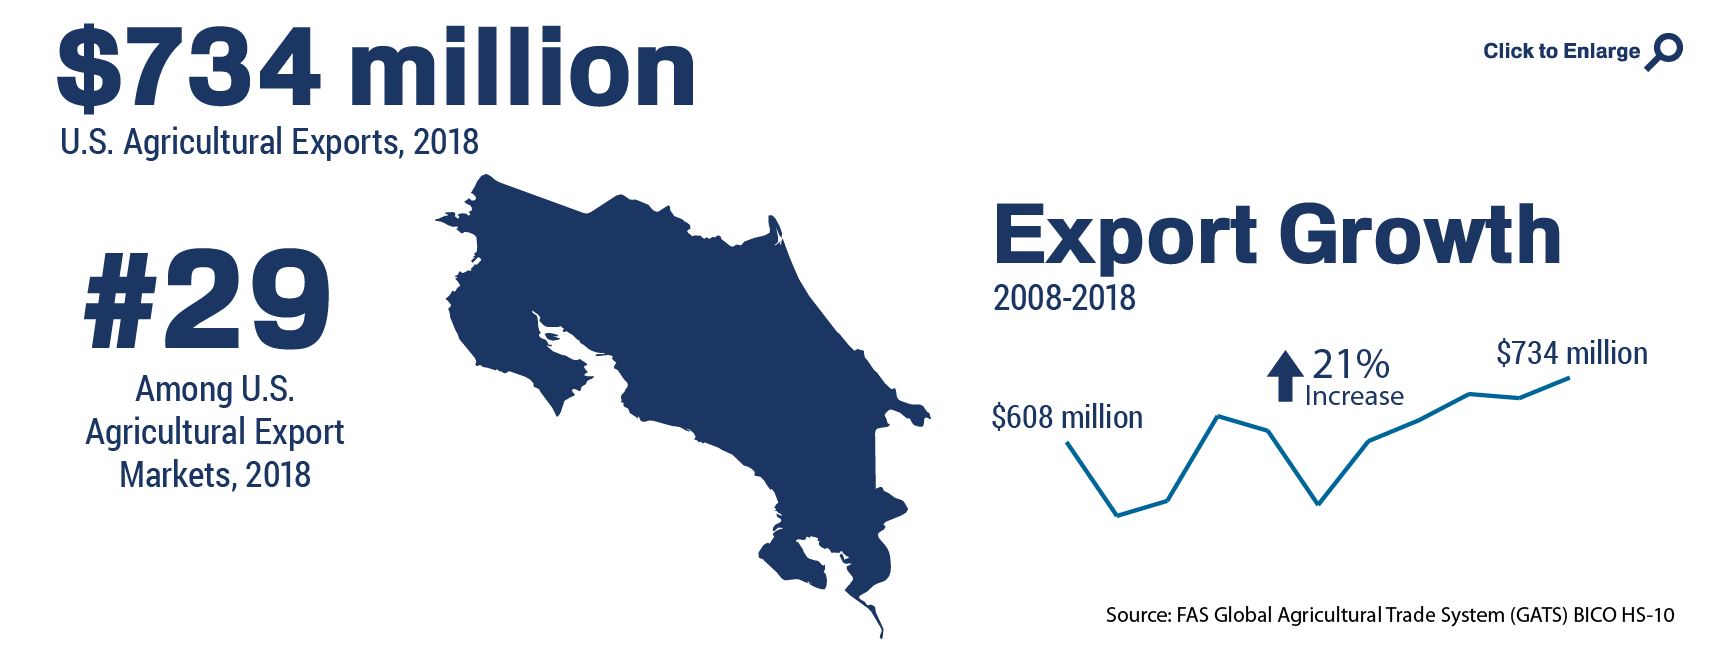 Infographic showing the ranking and total of U.S. agricultural trade to Costa Rica in 2018